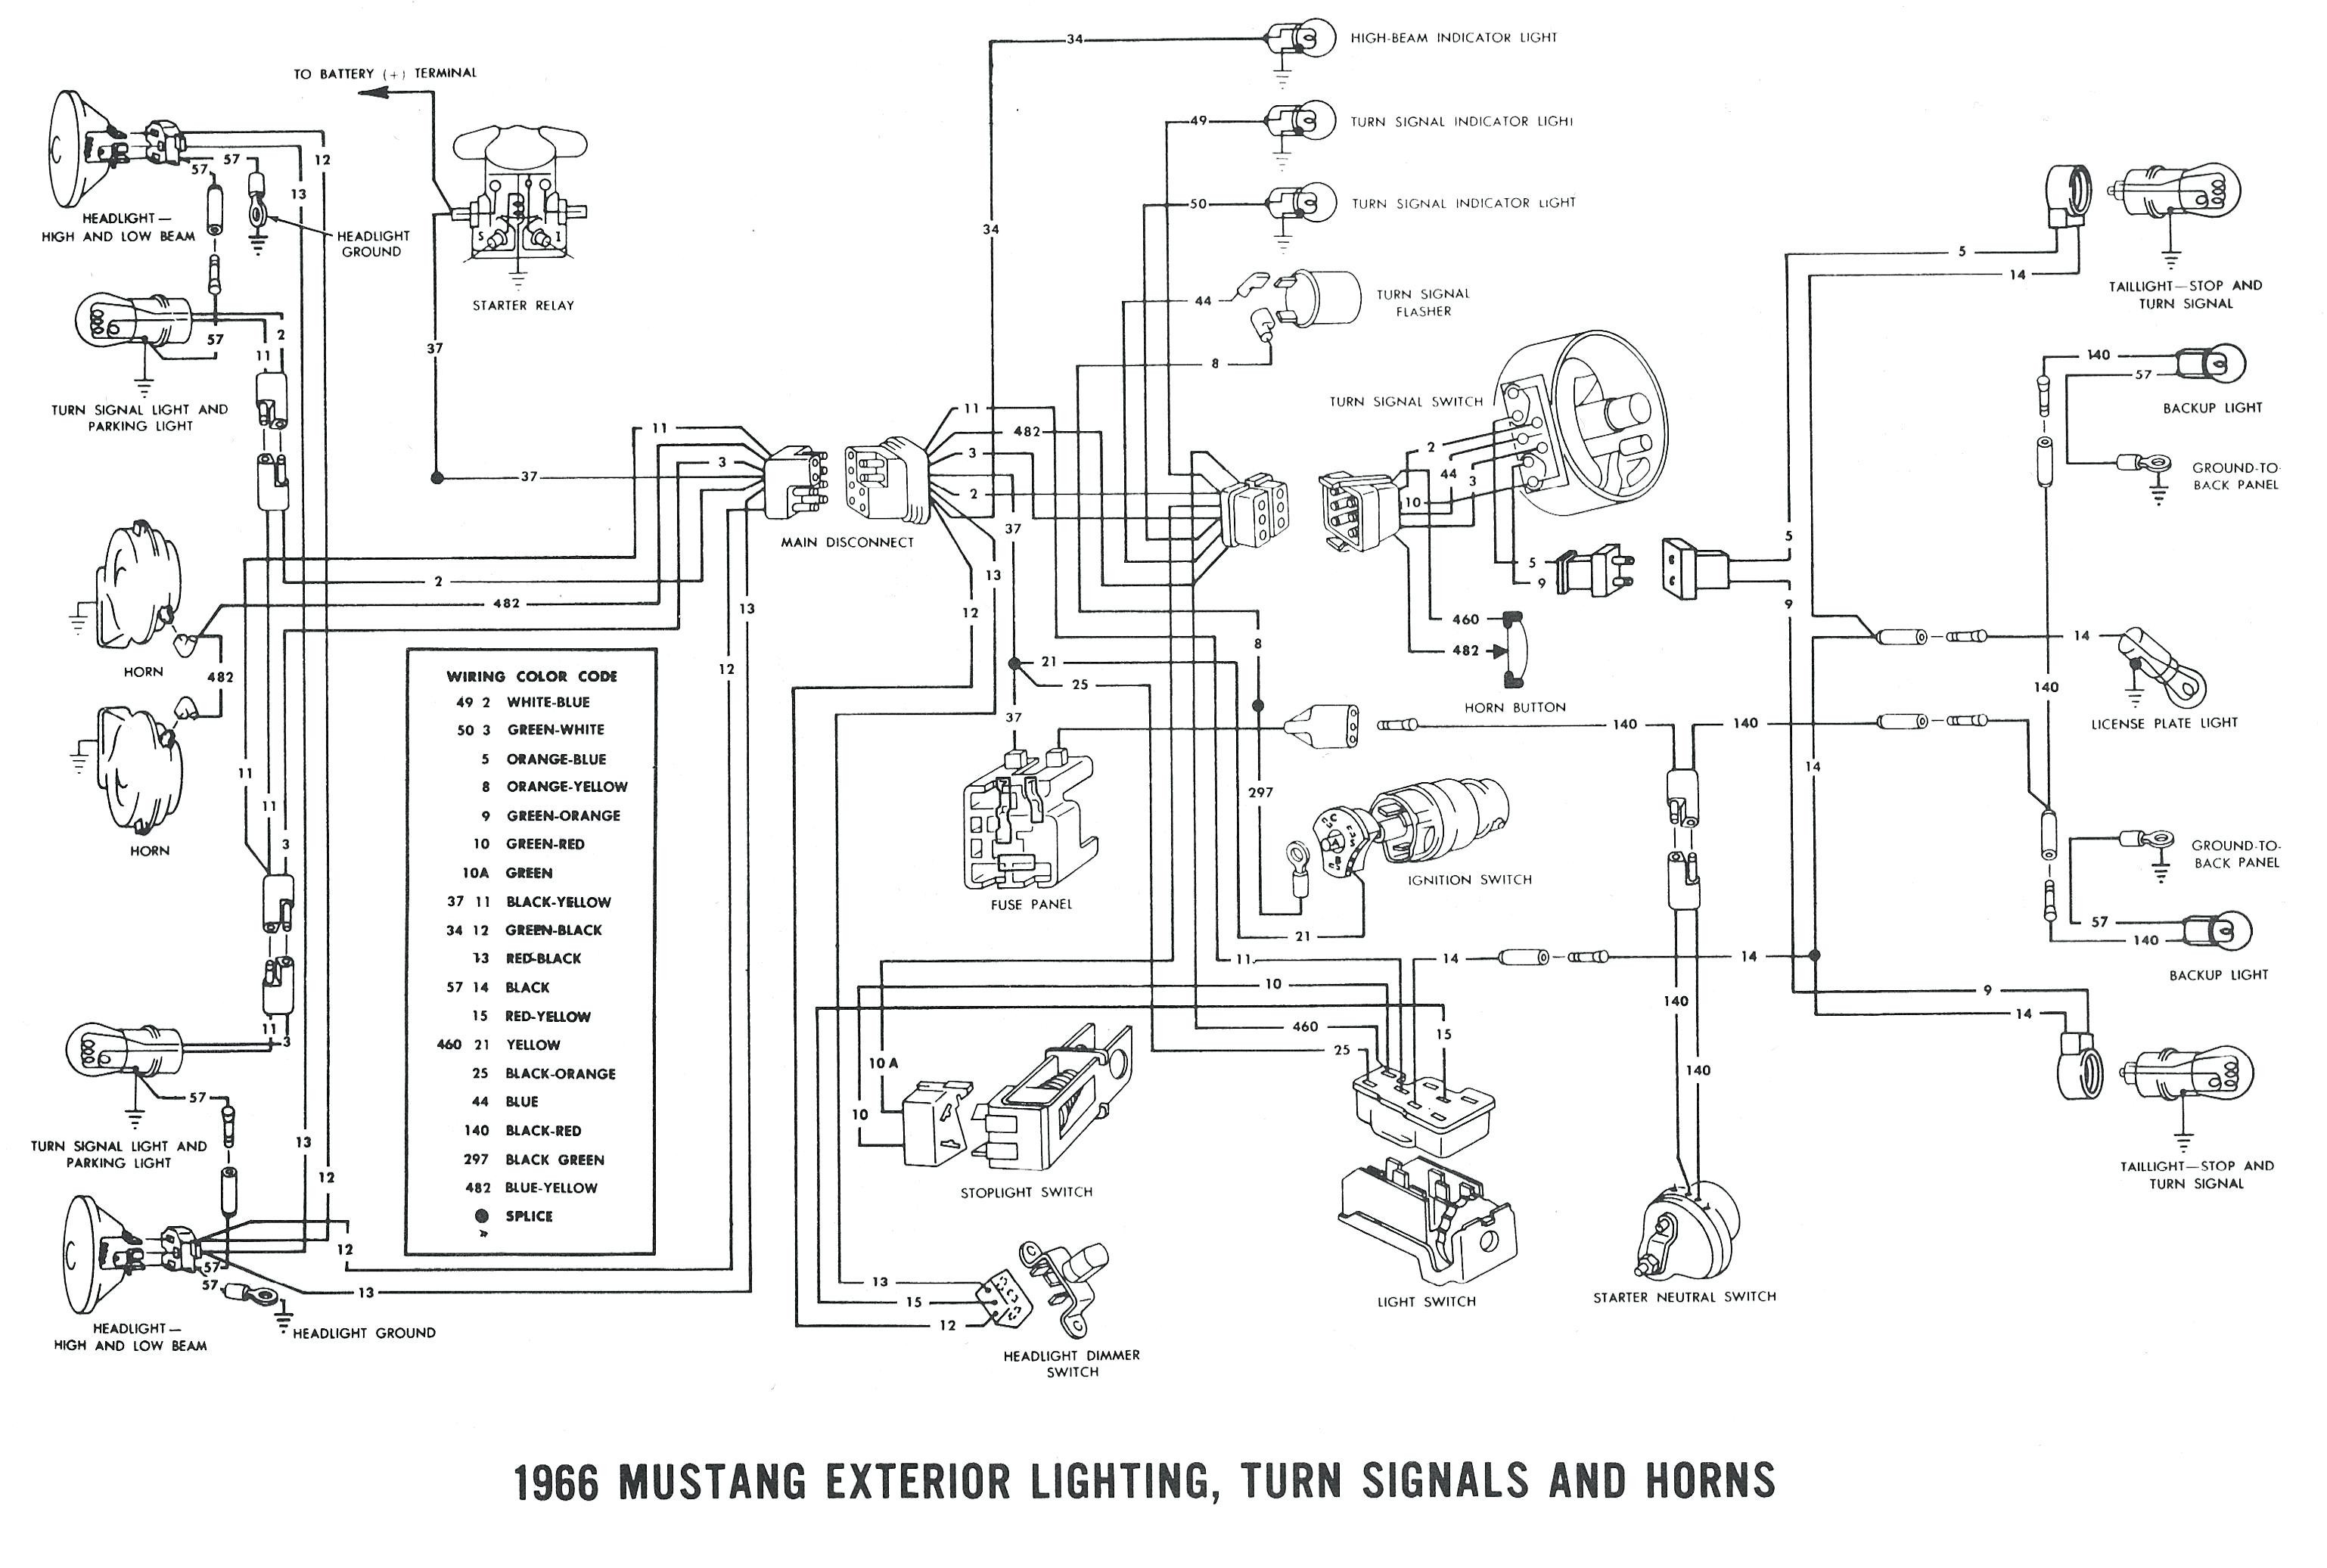 1970 Ford F100 Ignition Wiring Diagram - Wiring Diagram